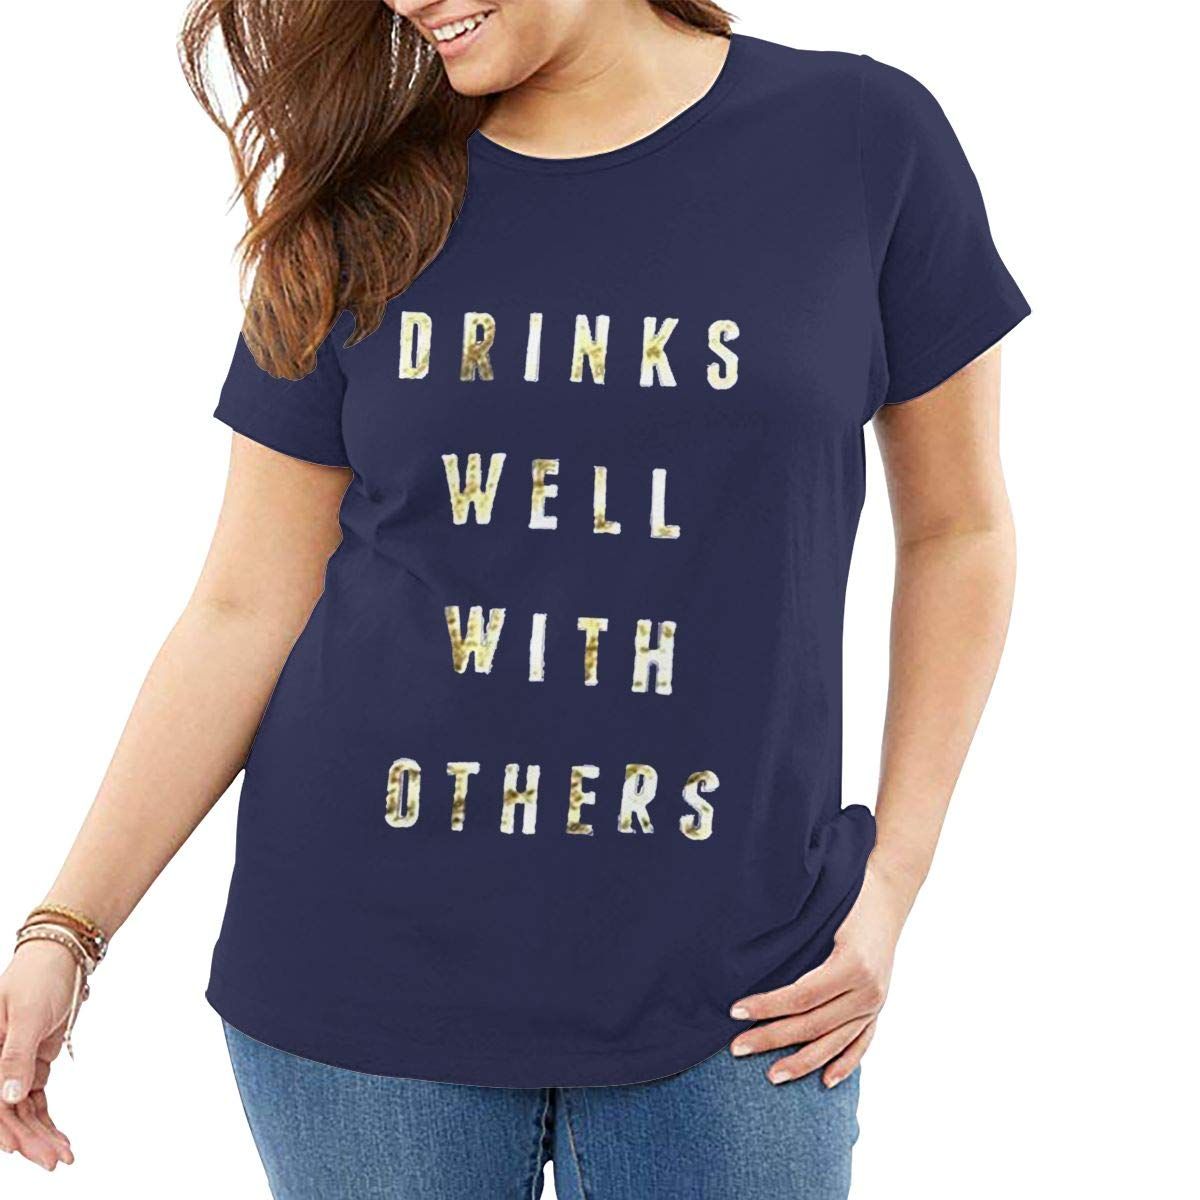 Fat Women's T Shirt Drinks Well with Others Tee Shirts T-Shirt Short-Sleeve Round Neck Tshirt for Women Youth Girls Navy XL by BKashy